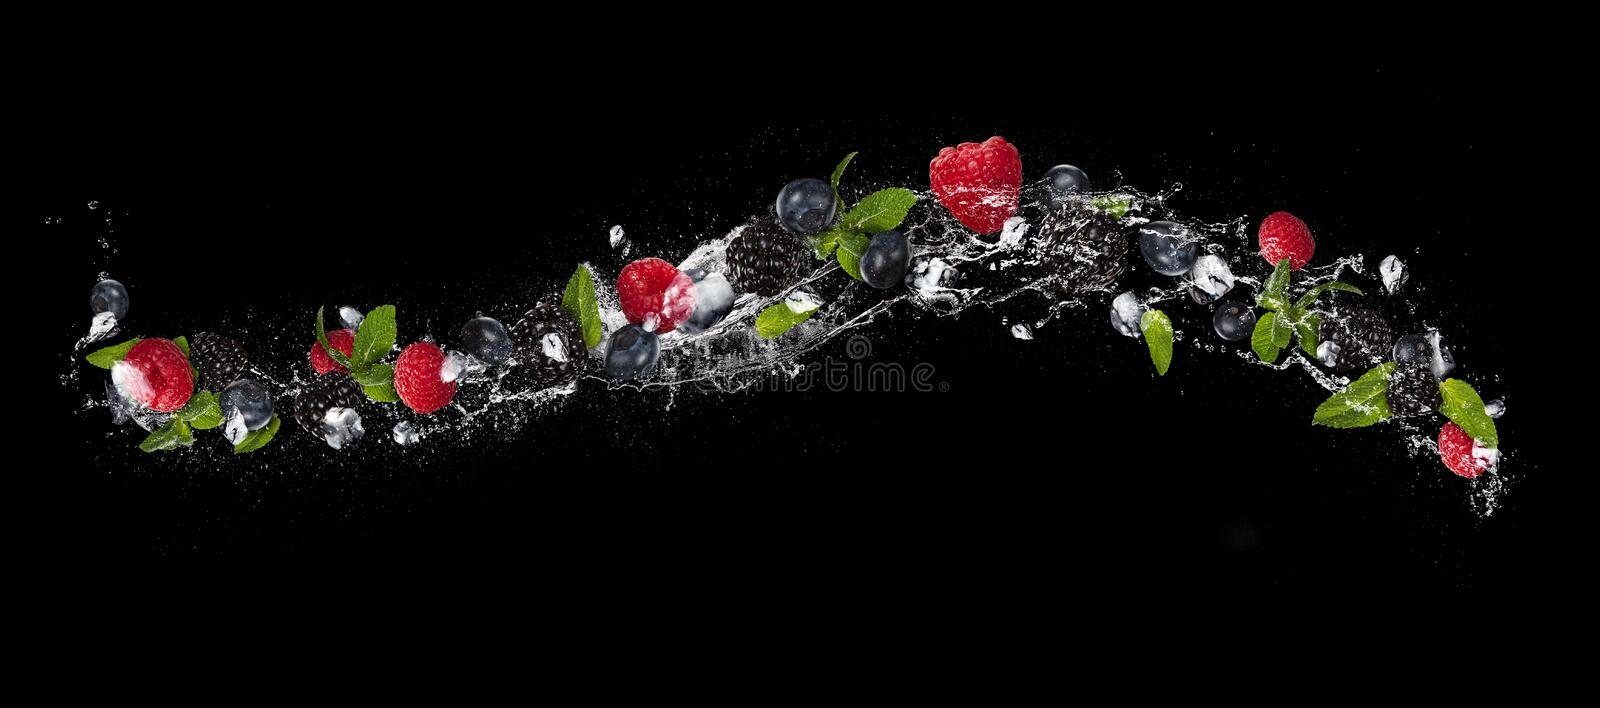 Mix of berry fruit in water splash, isolated on black background royalty free stock photo